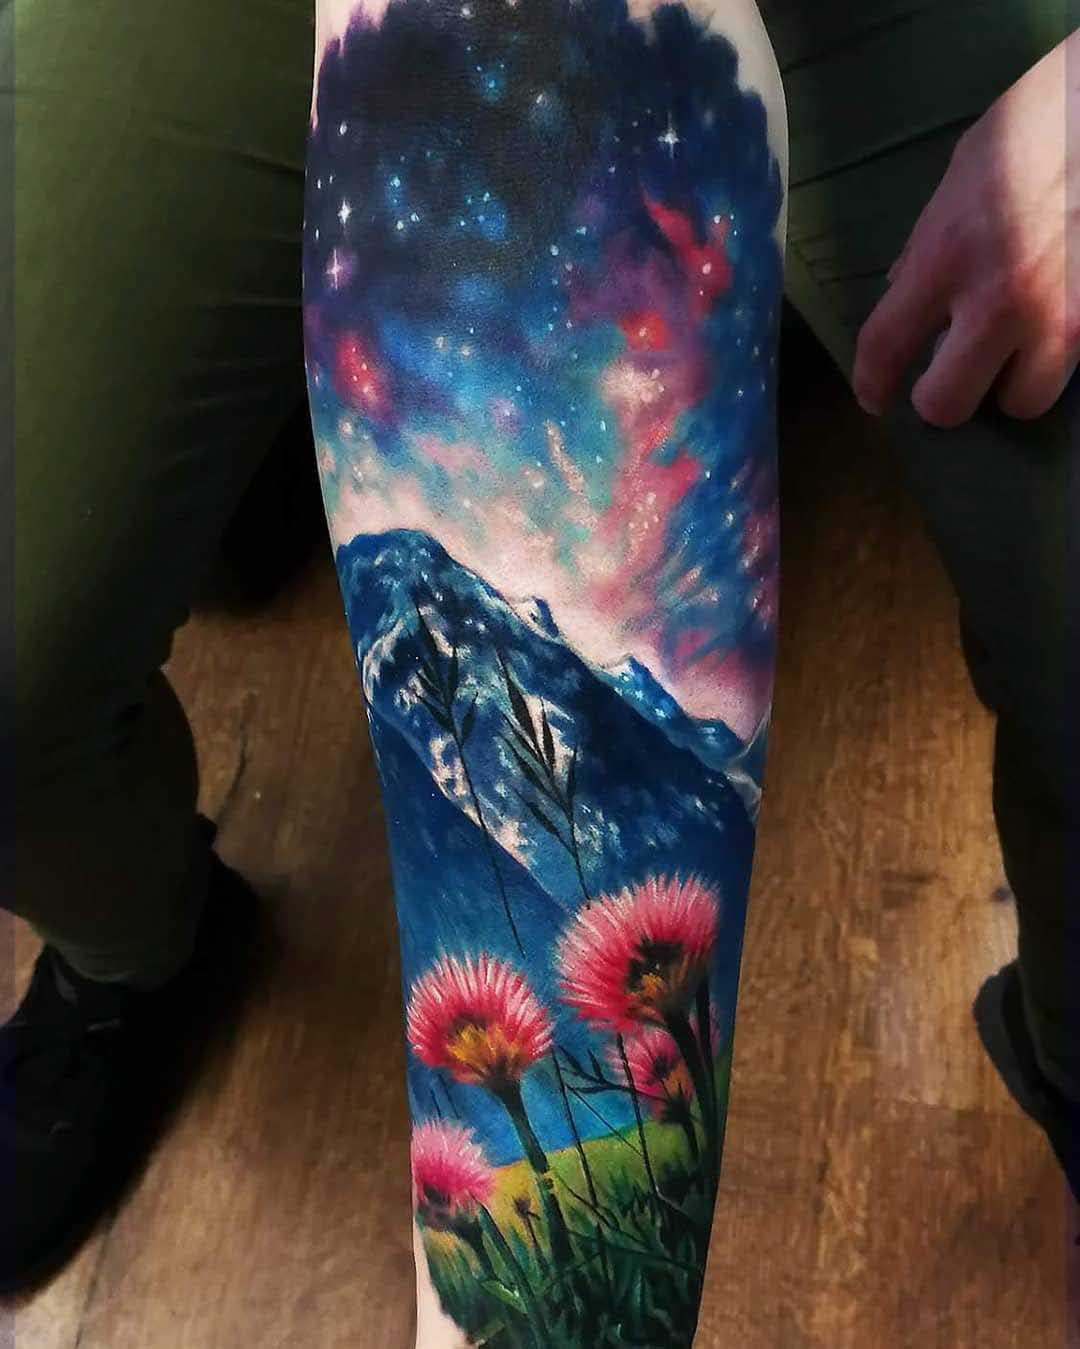 landscape tattoo mountains and starry sky universe